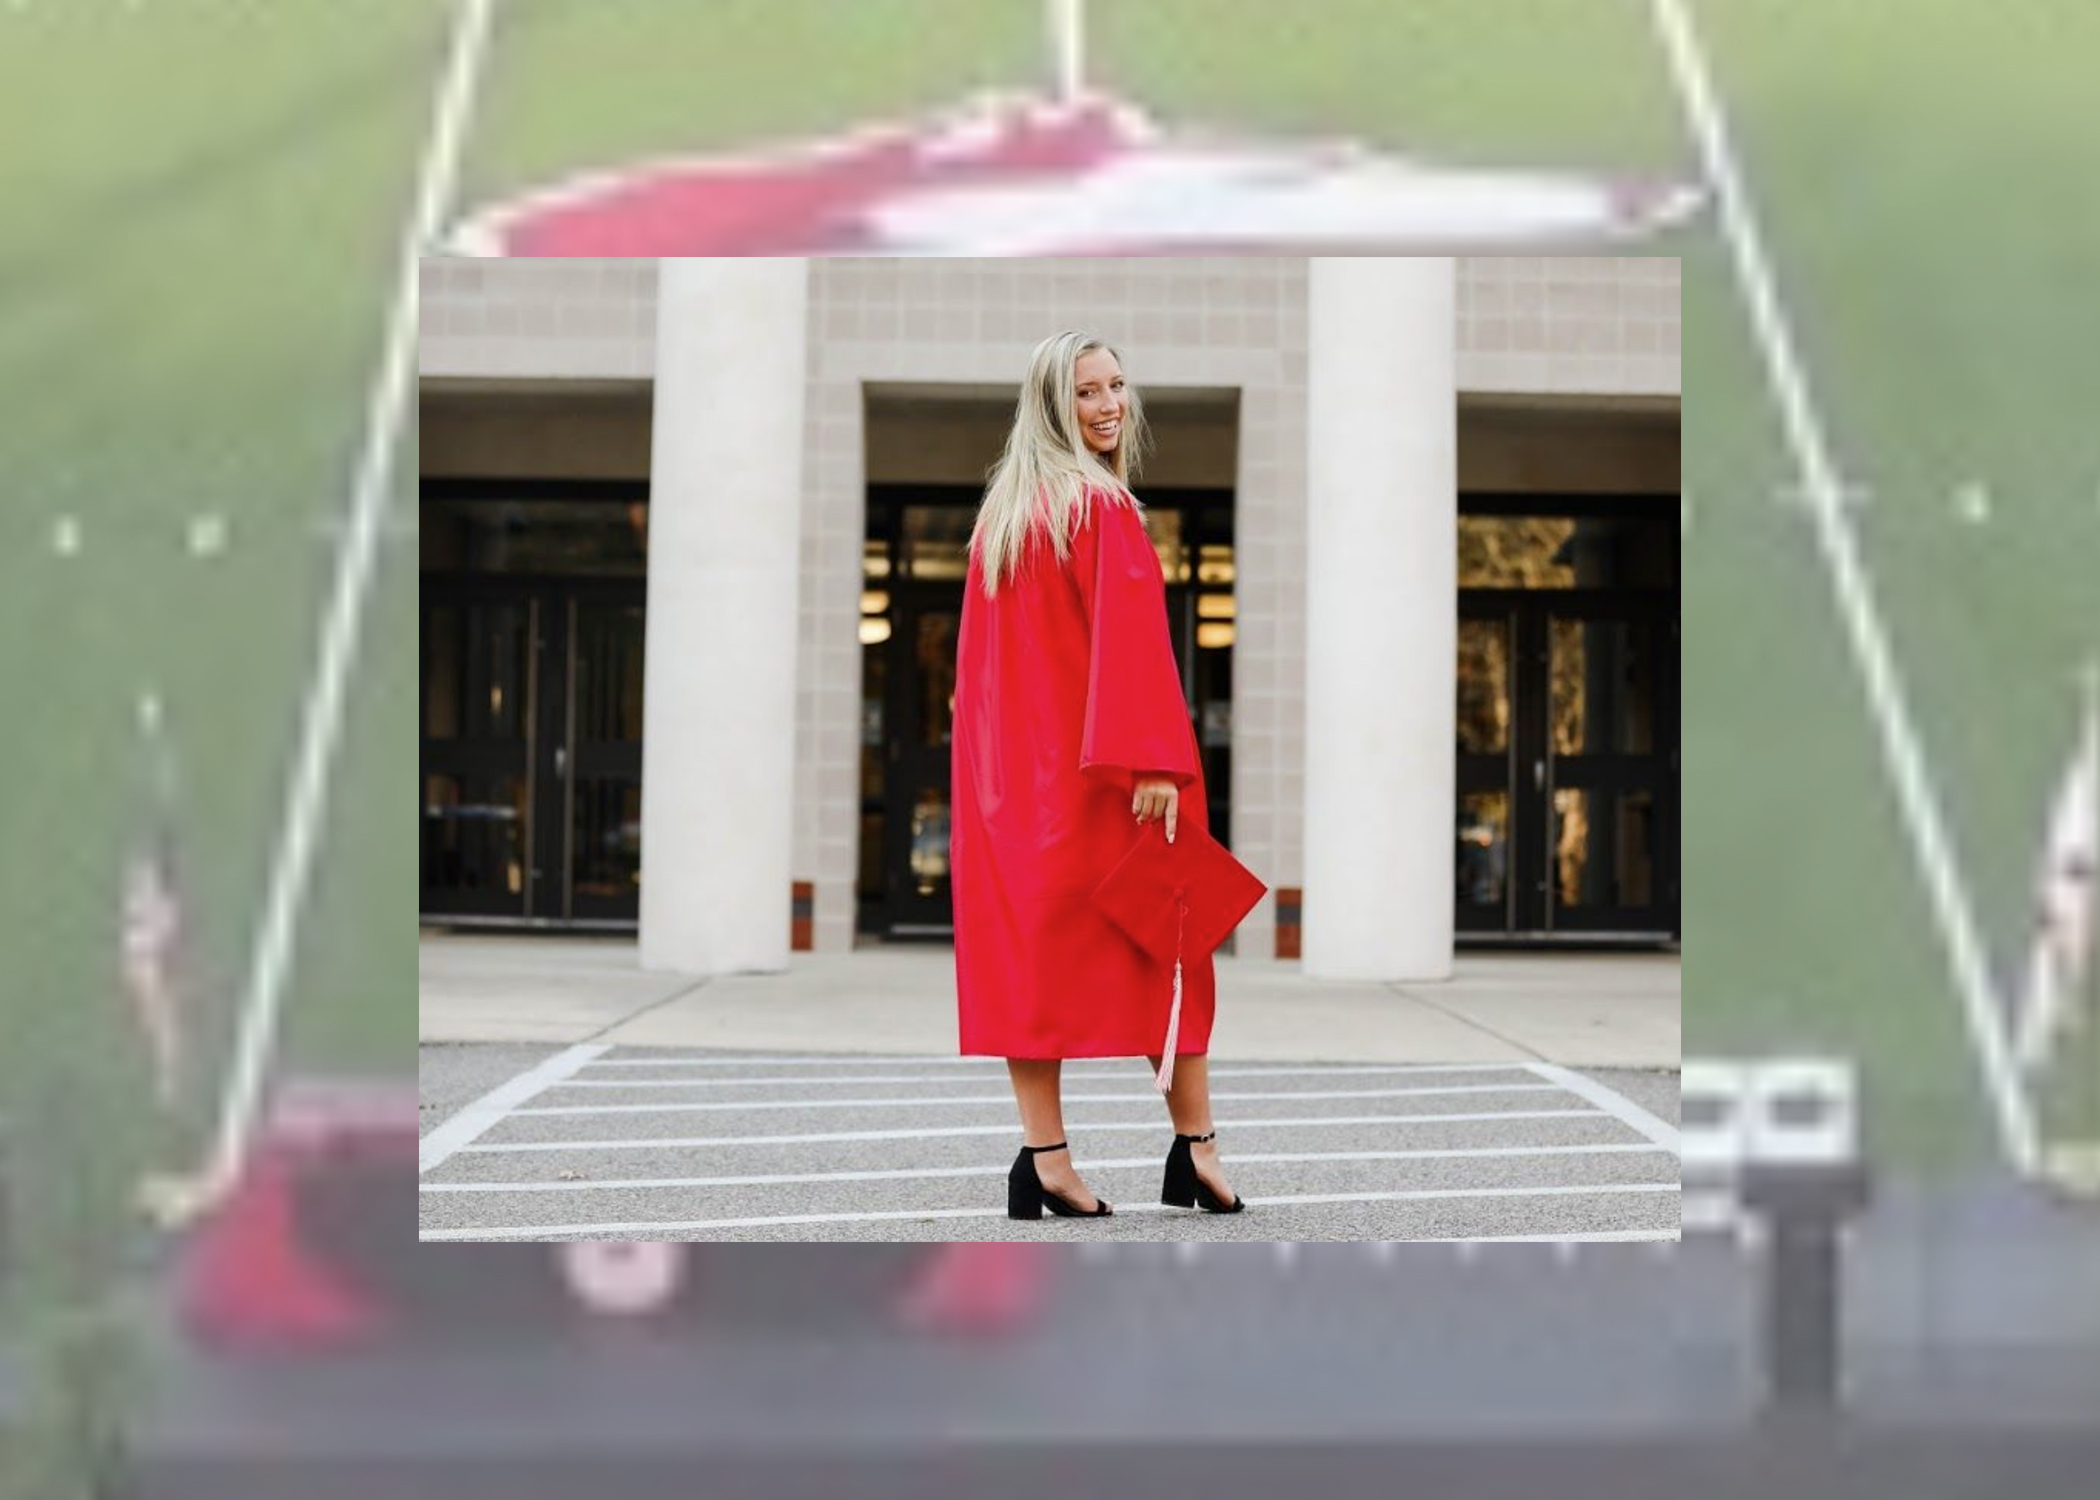 Hewitt-Trussville High School student starts petition to have Senior Awards Day